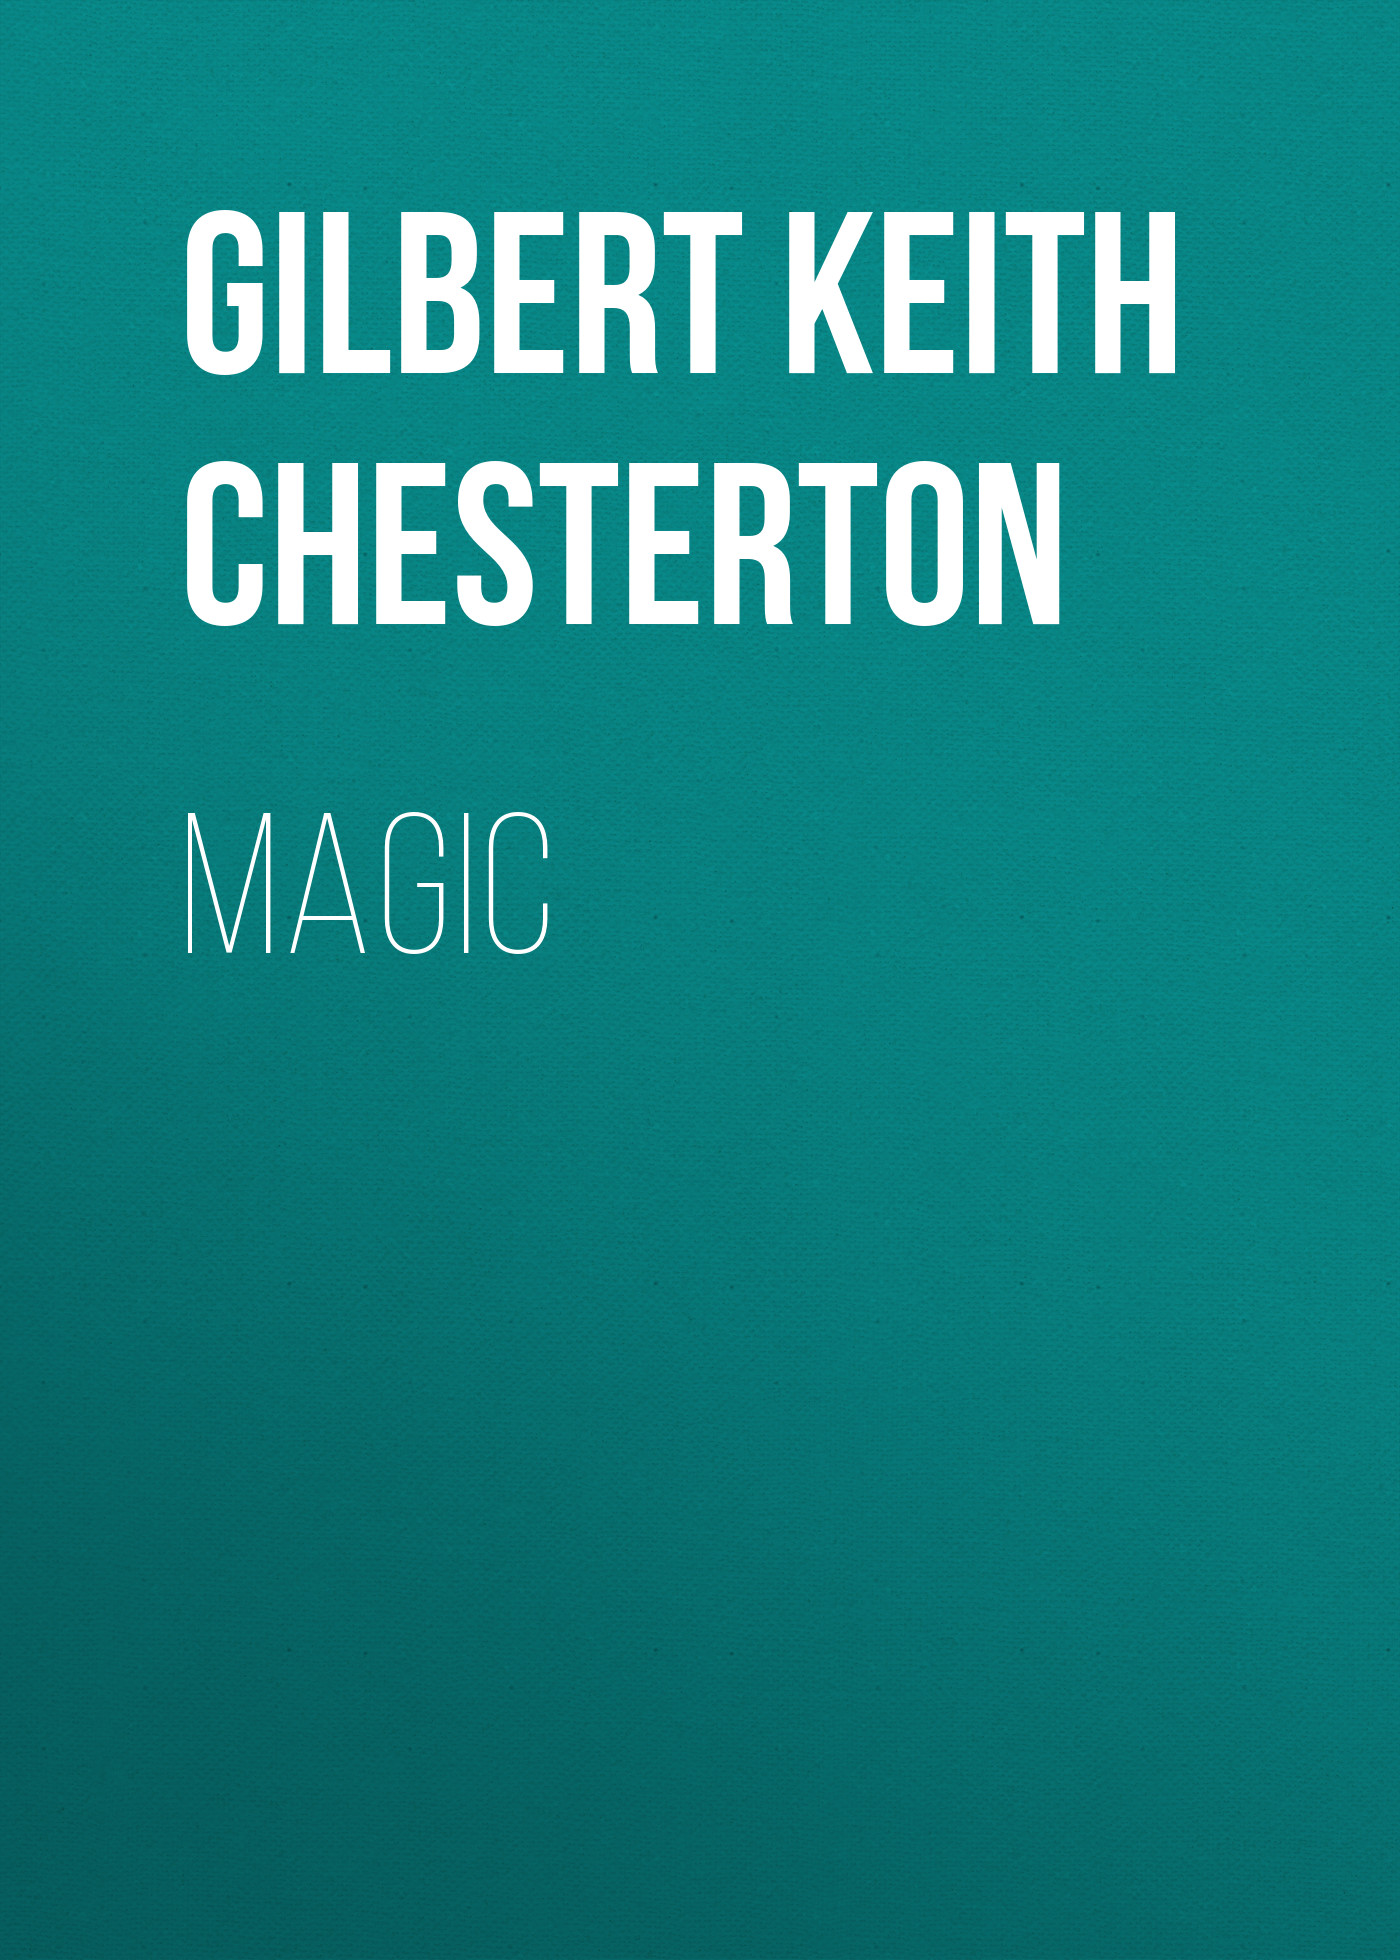 лучшая цена Gilbert Keith Chesterton Magic